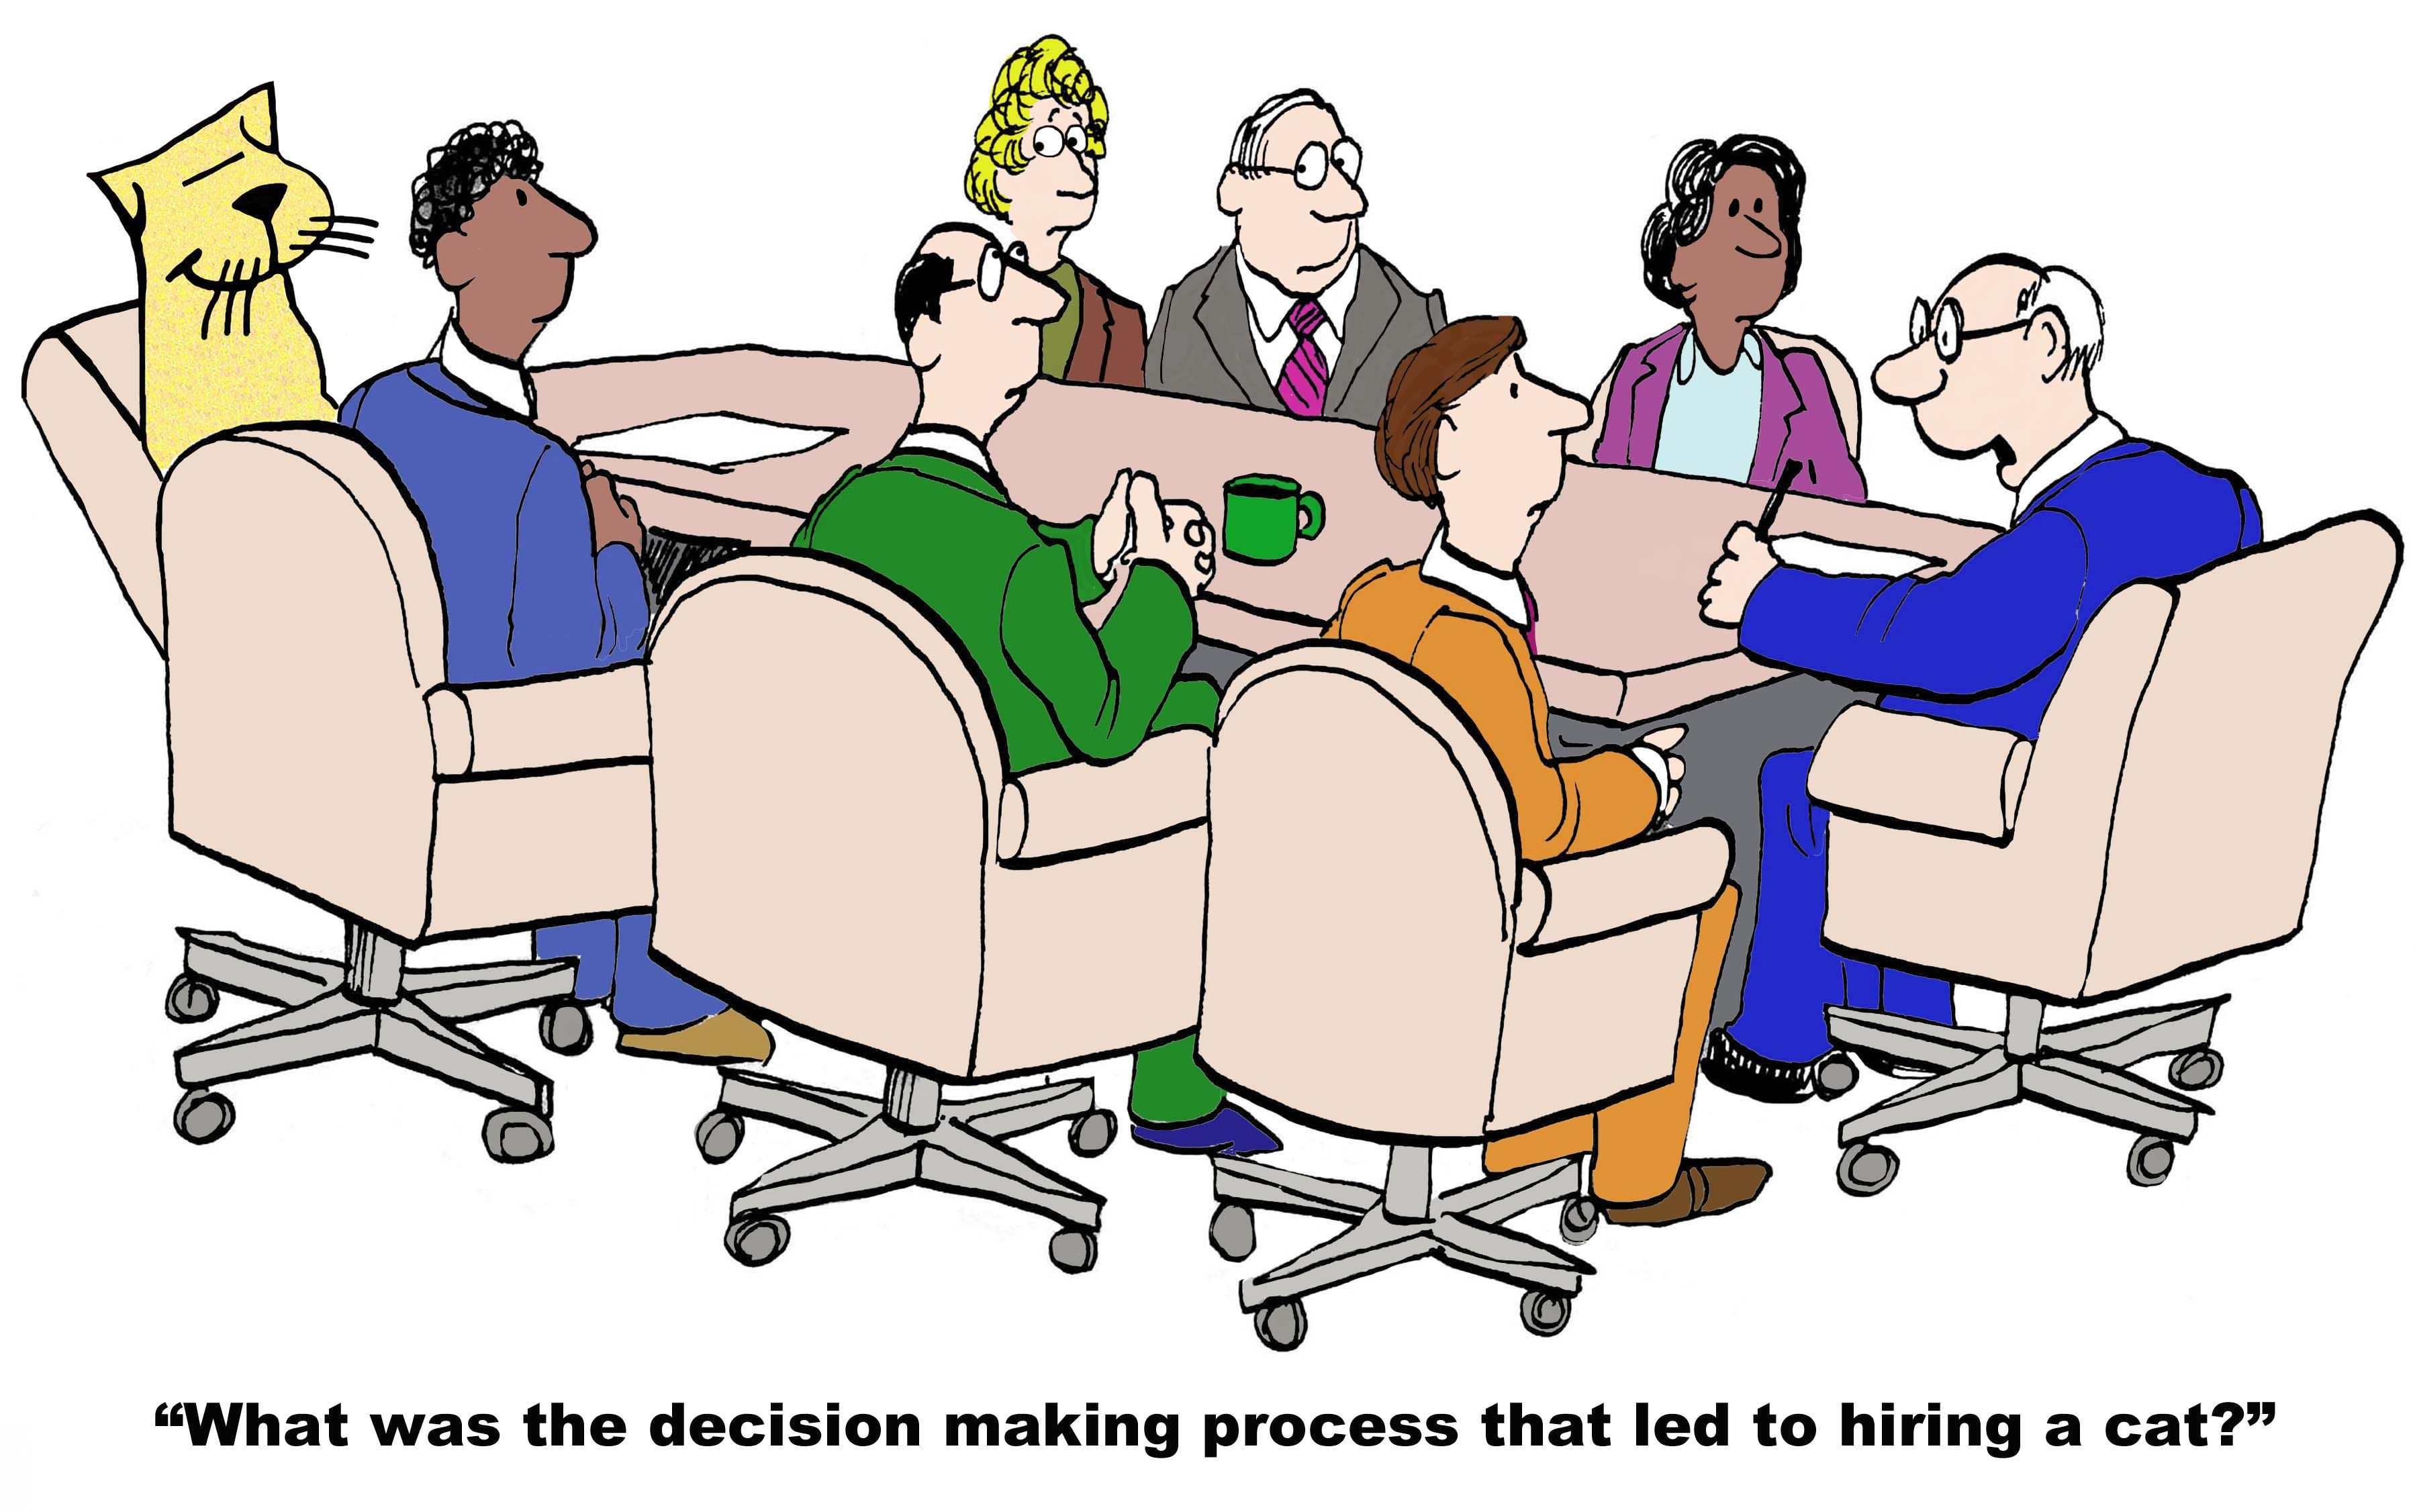 How to Make Quality Decisions Quickly